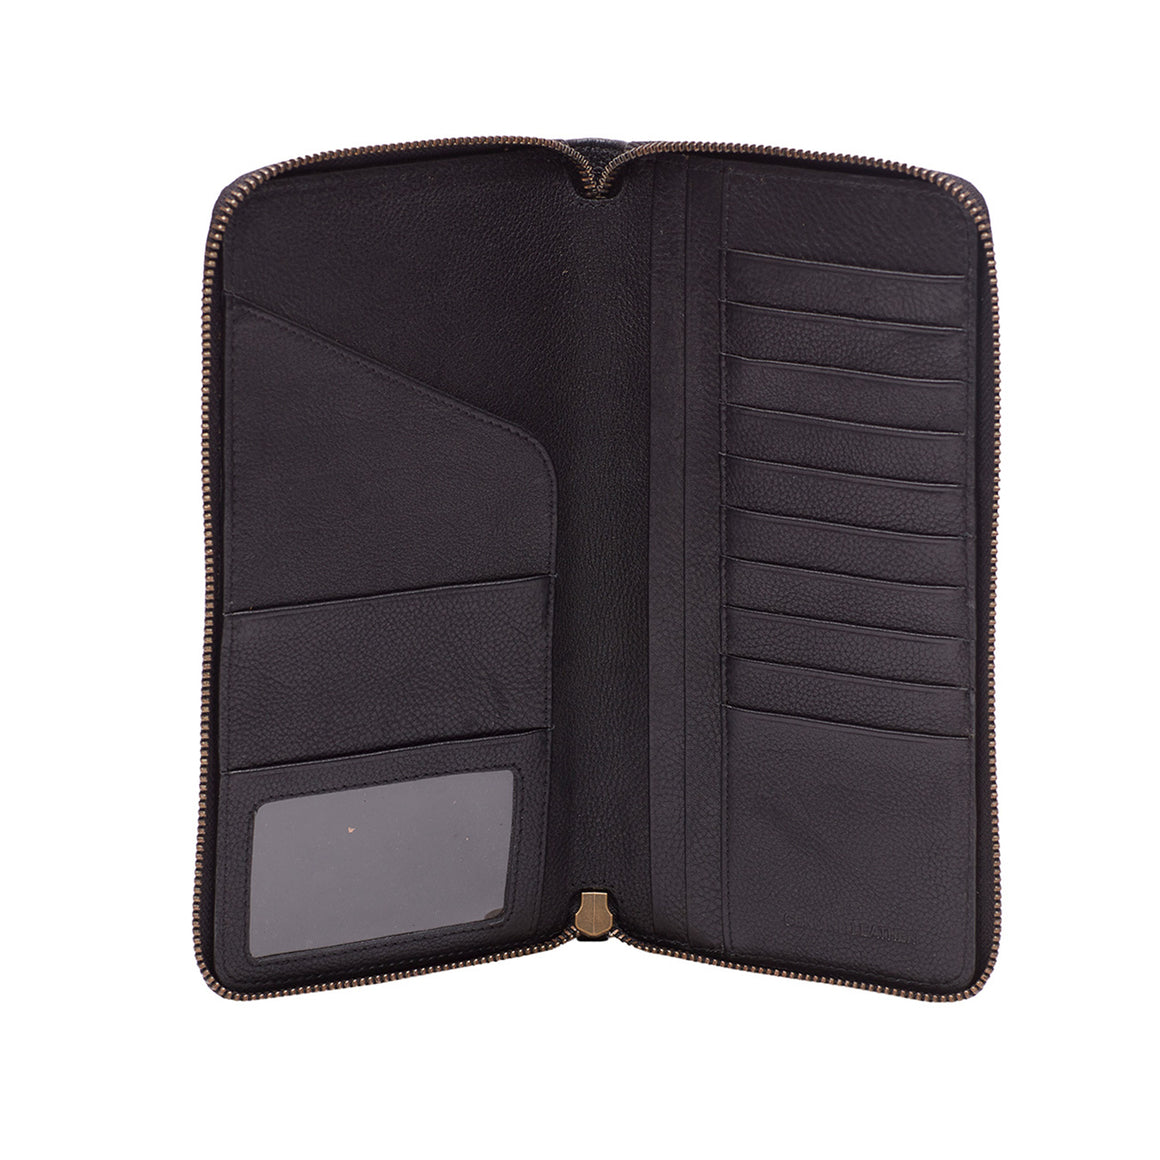 WT 0037 - TOHL DONATO MEN'S WALLET - CHARCOAL BLACK